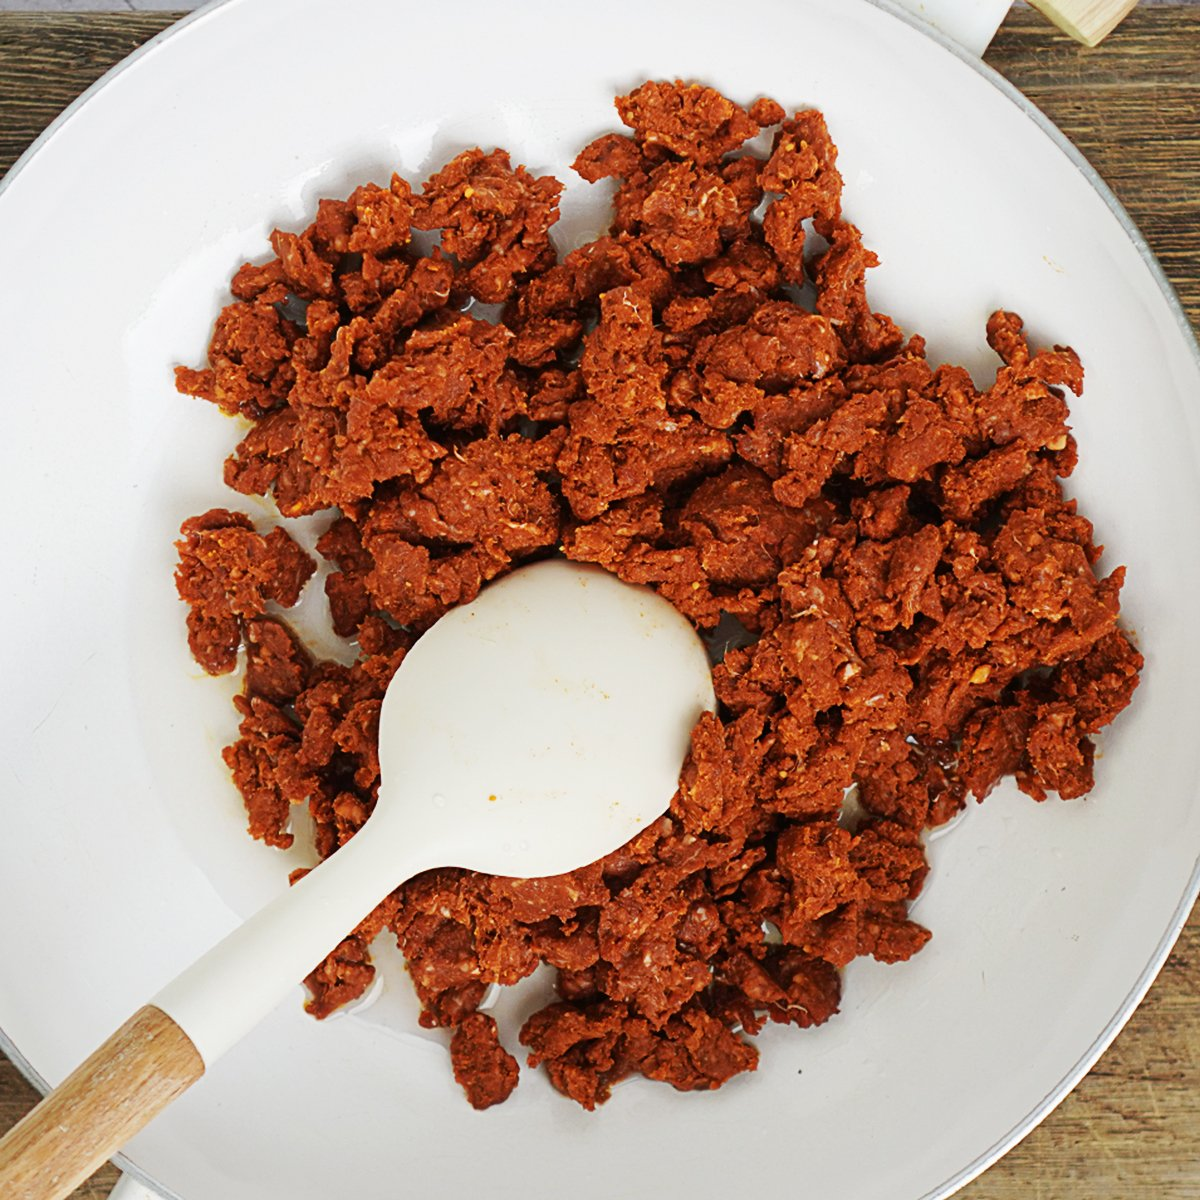 Starting to cook chorizo in a white pot